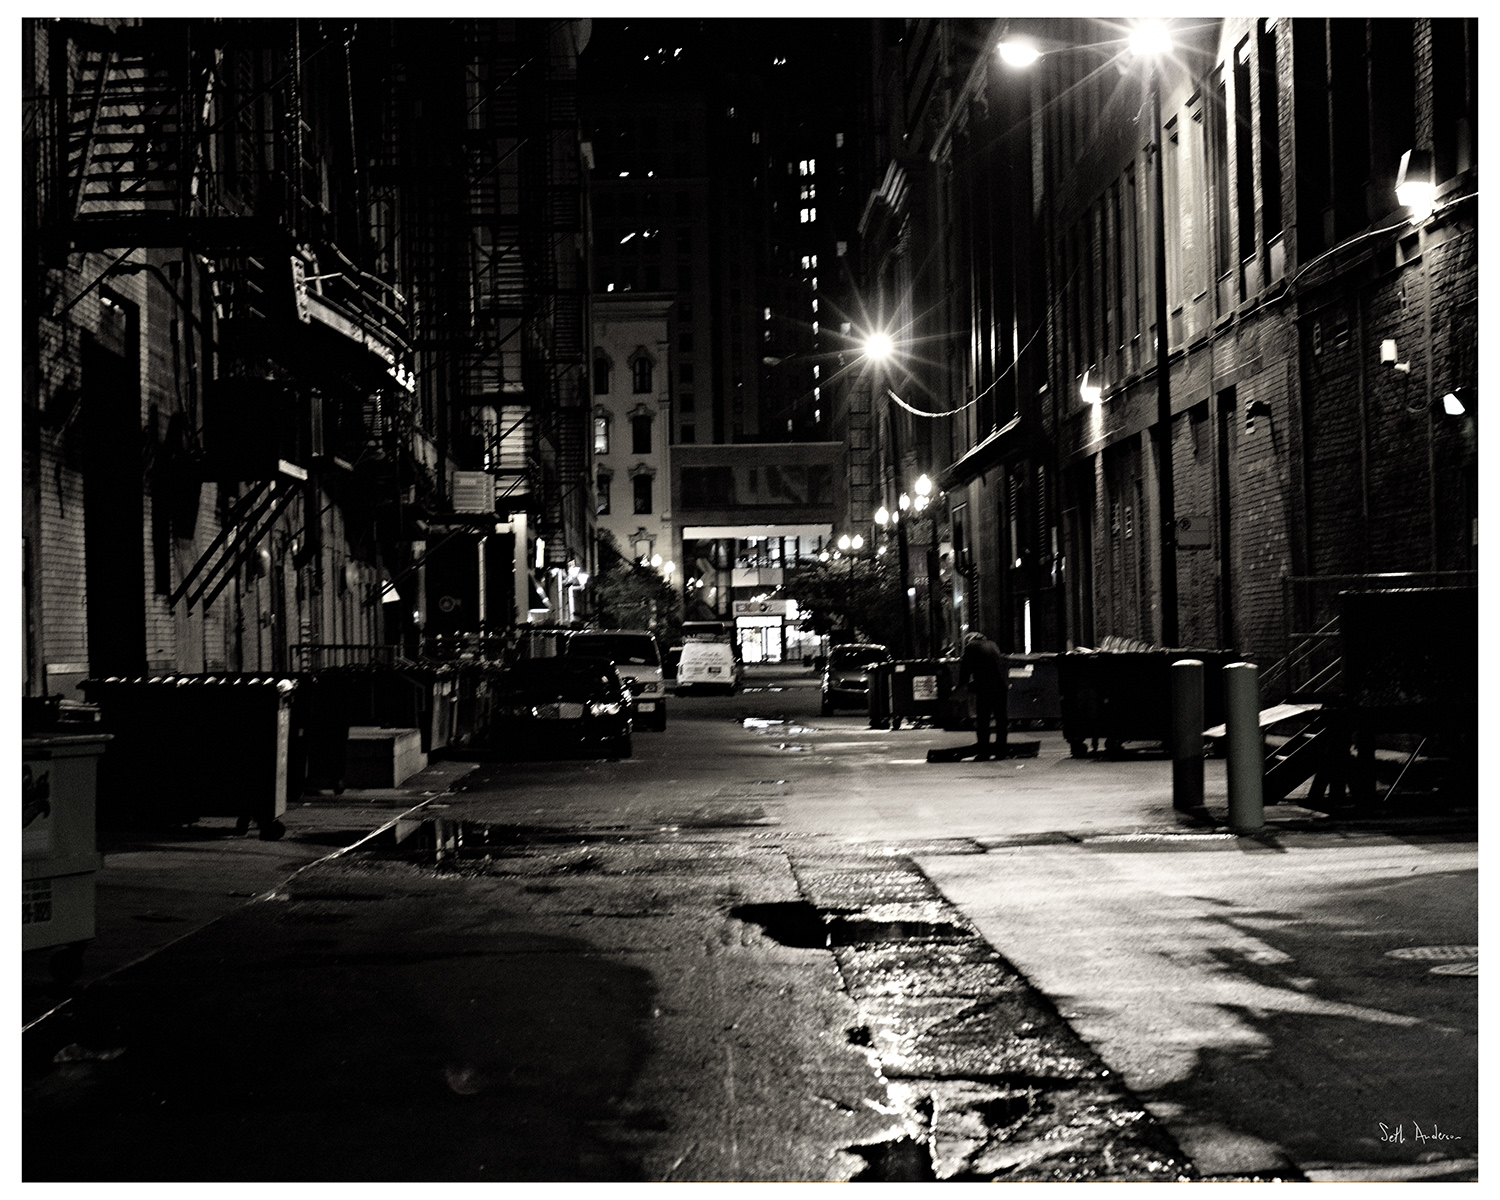 All Poems Are Accidents Alley Night Nocturne B12 Photos